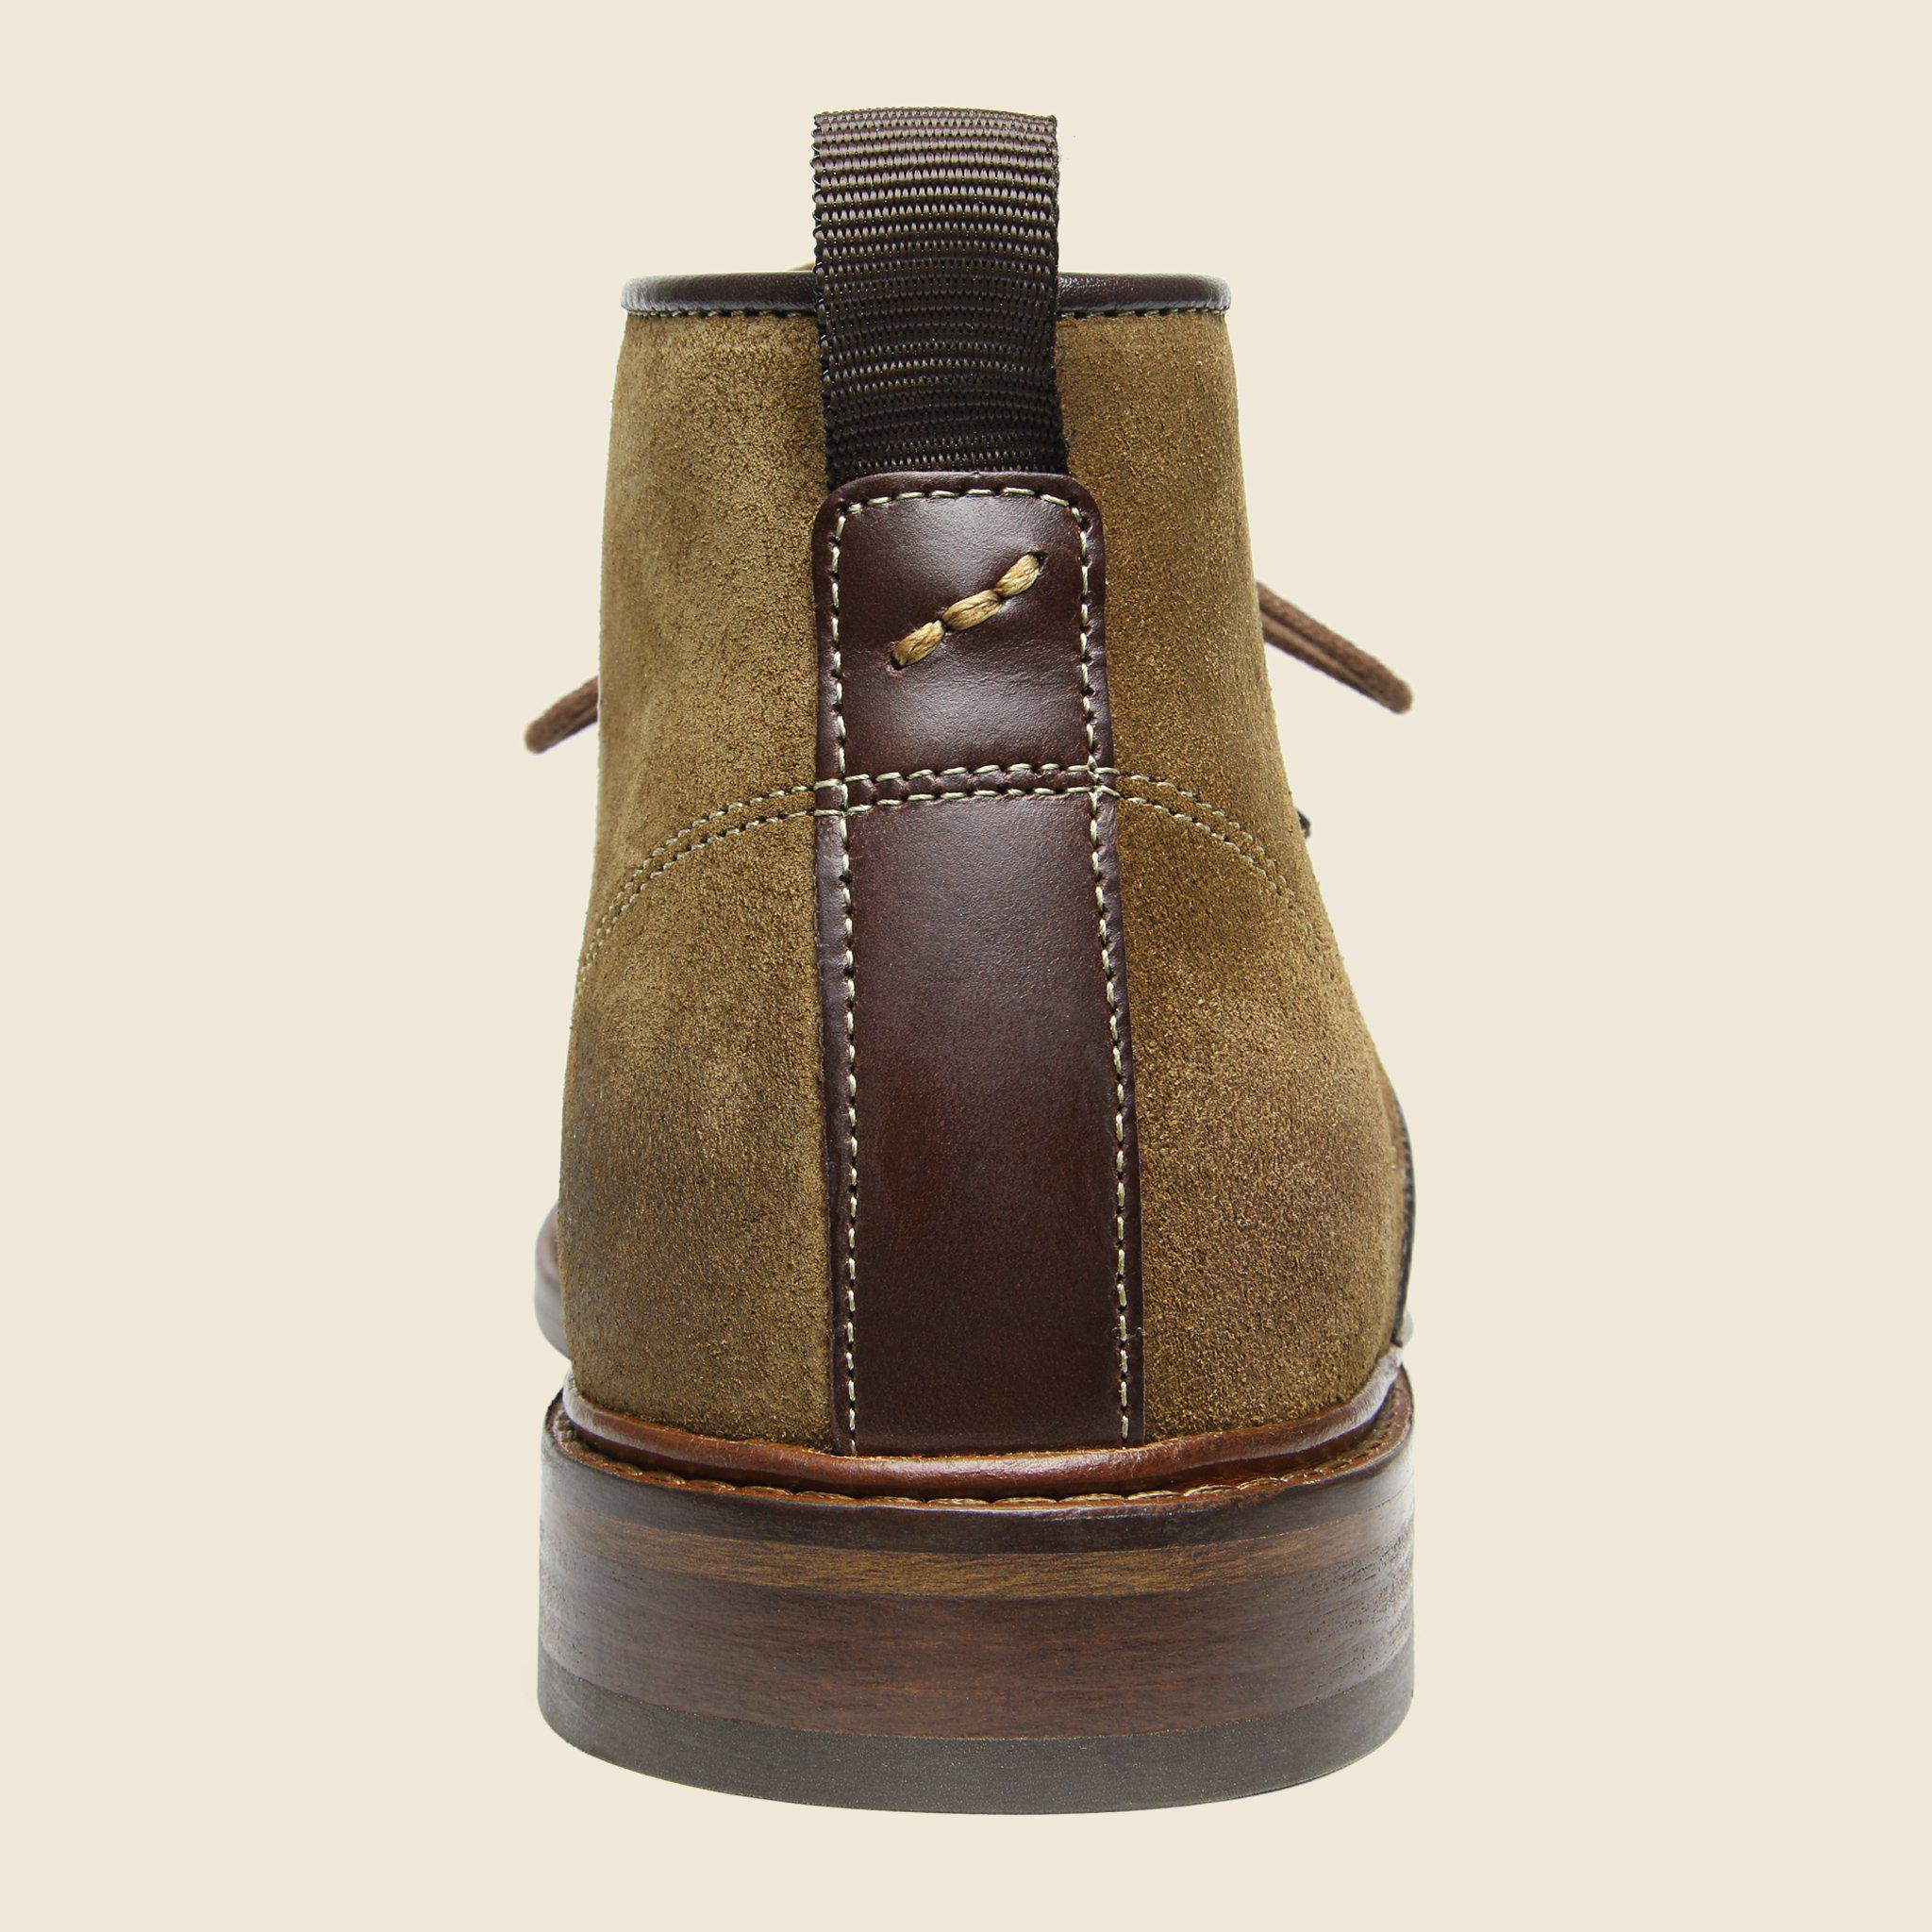 ccc040622448 Lyst - Shoe The Bear Dalton Suede Chukka - Light Brown in Brown for Men